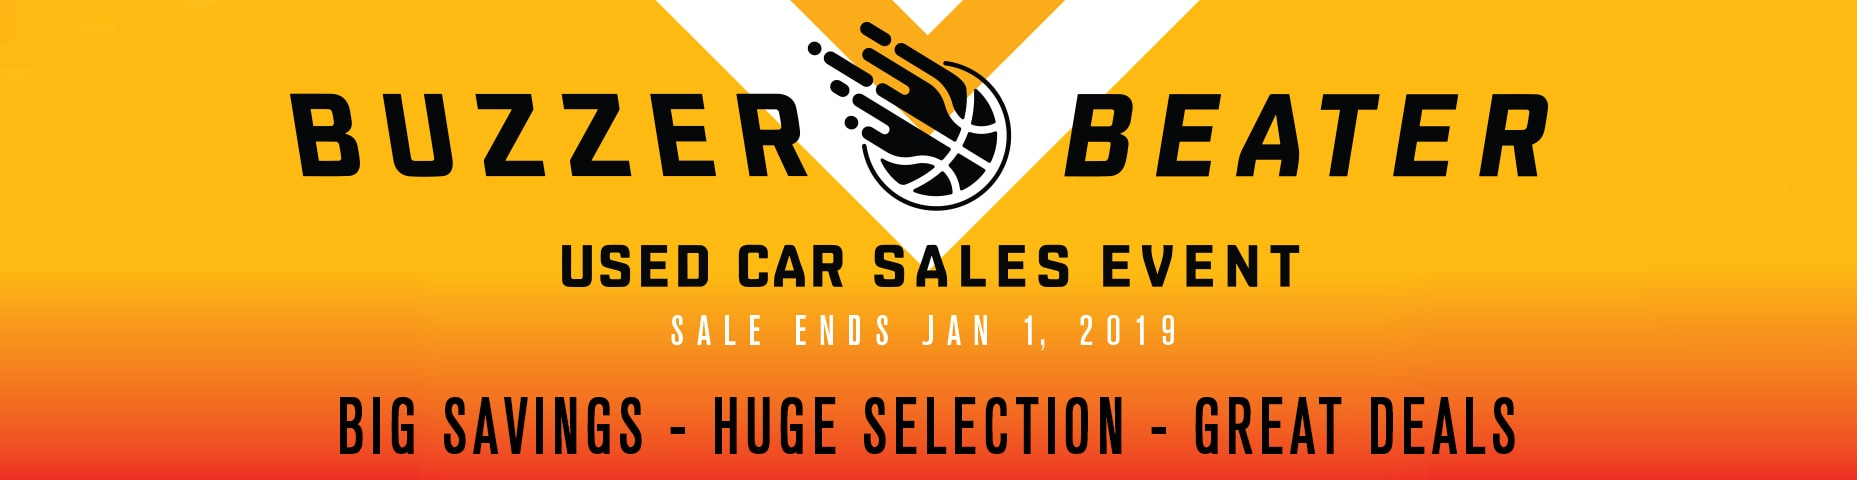 Buzzer Beater Used Car Sales Event at Larry H. Miller Dodge Ram Havana